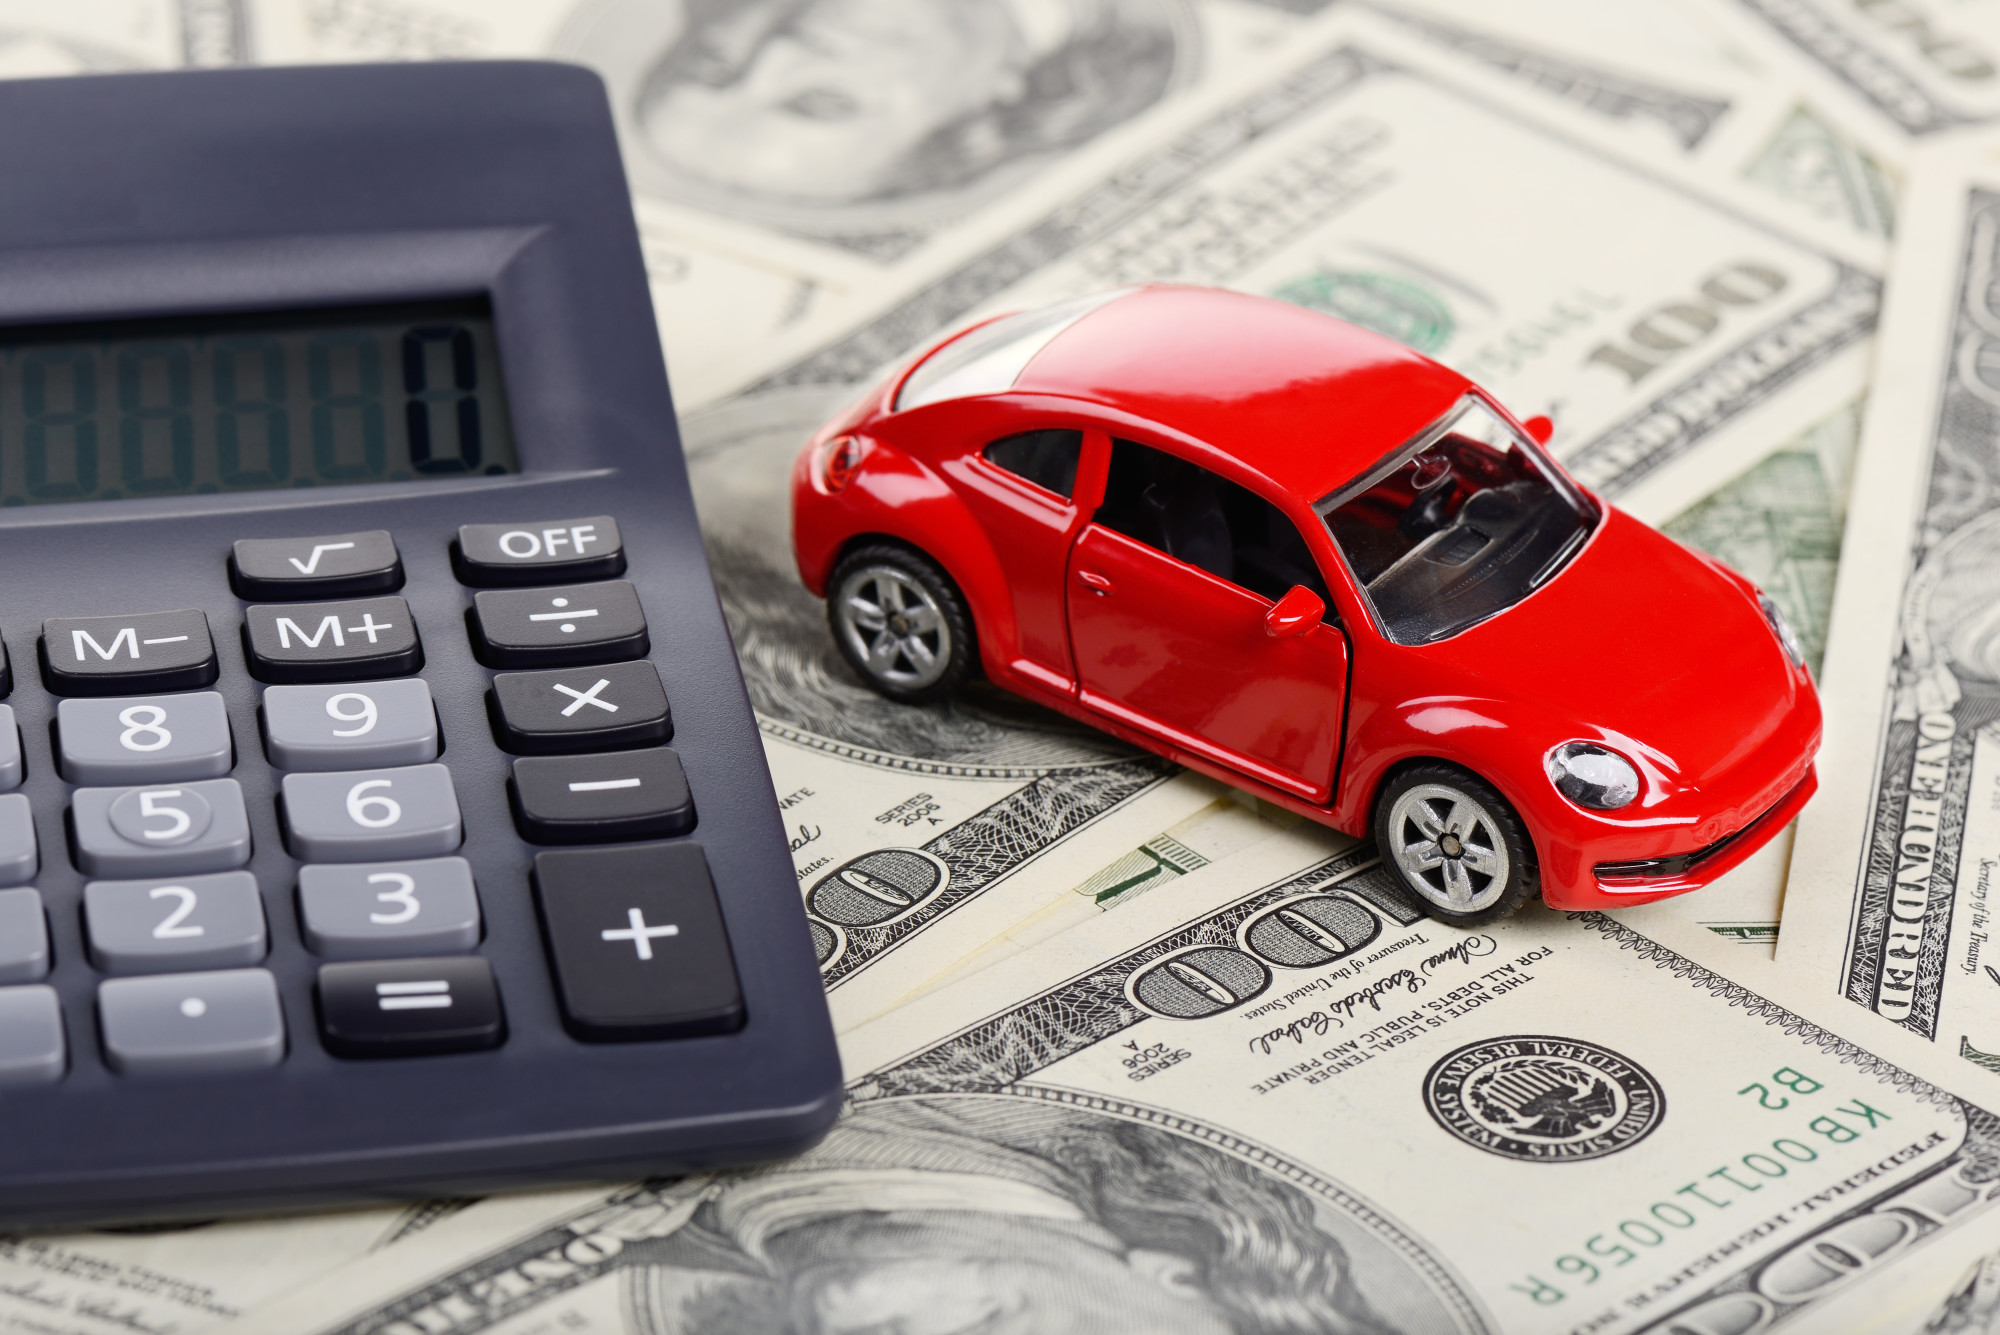 Did you know that you can receive cash for car titles? Learn more about how car titles loans work with our comprehensive guide.